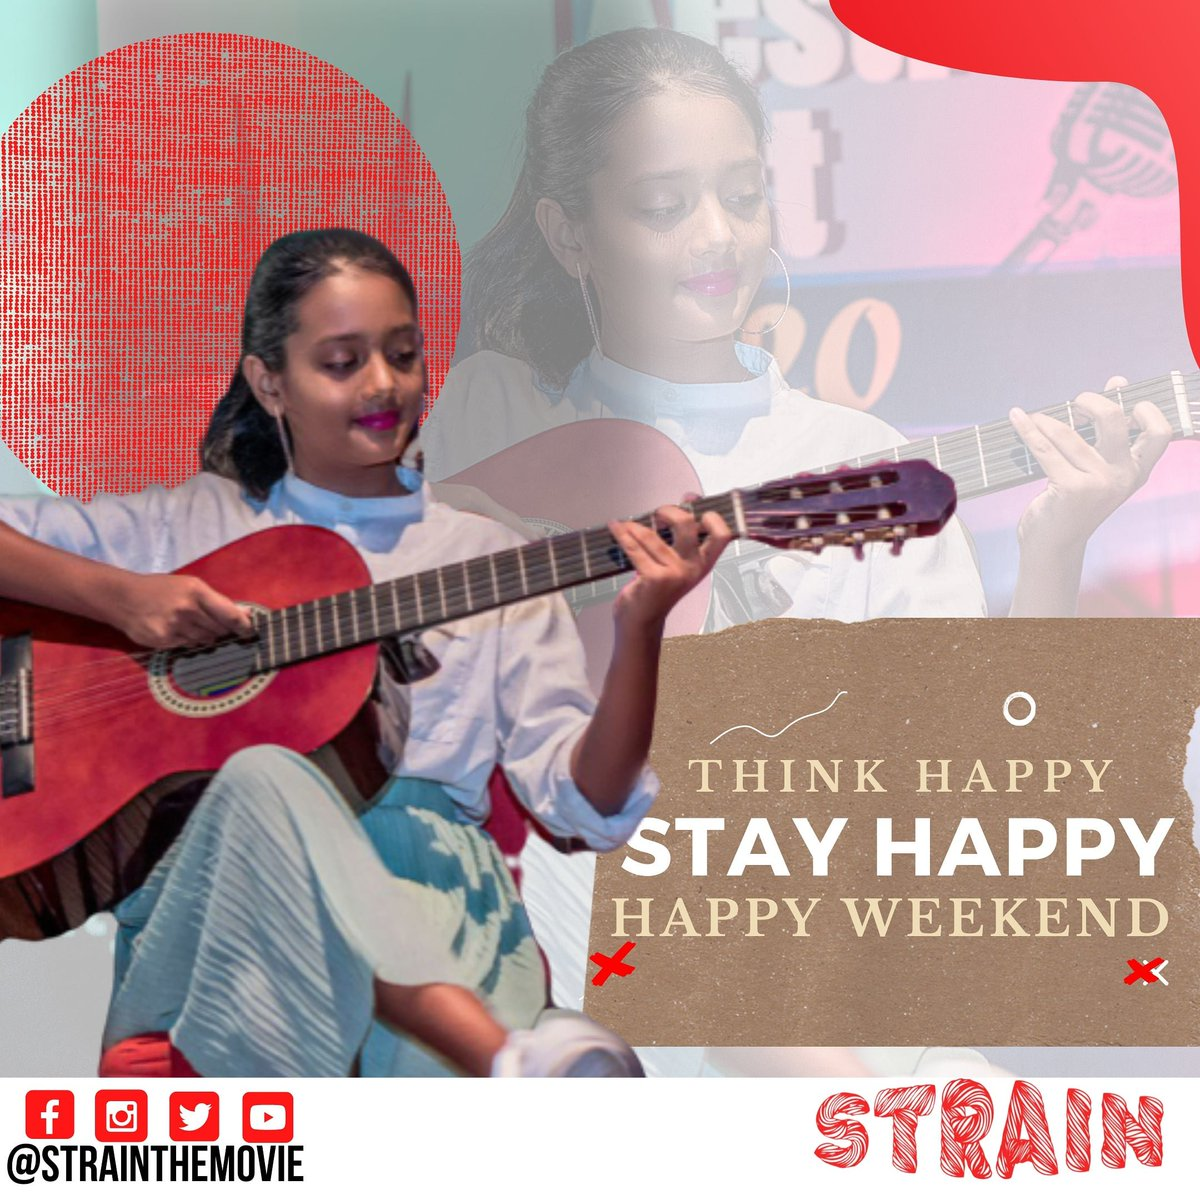 Make sure you think and stay happy!! because It's the weekend  .. Enjoy your weekend to the fullest .. .. #weekend #weekendvibes #weekendmood #weekendtime #familylife #familytime #familydrama #familyadventures #familypictures #entanglement #strainthemoviepic.twitter.com/9iRtauuX23